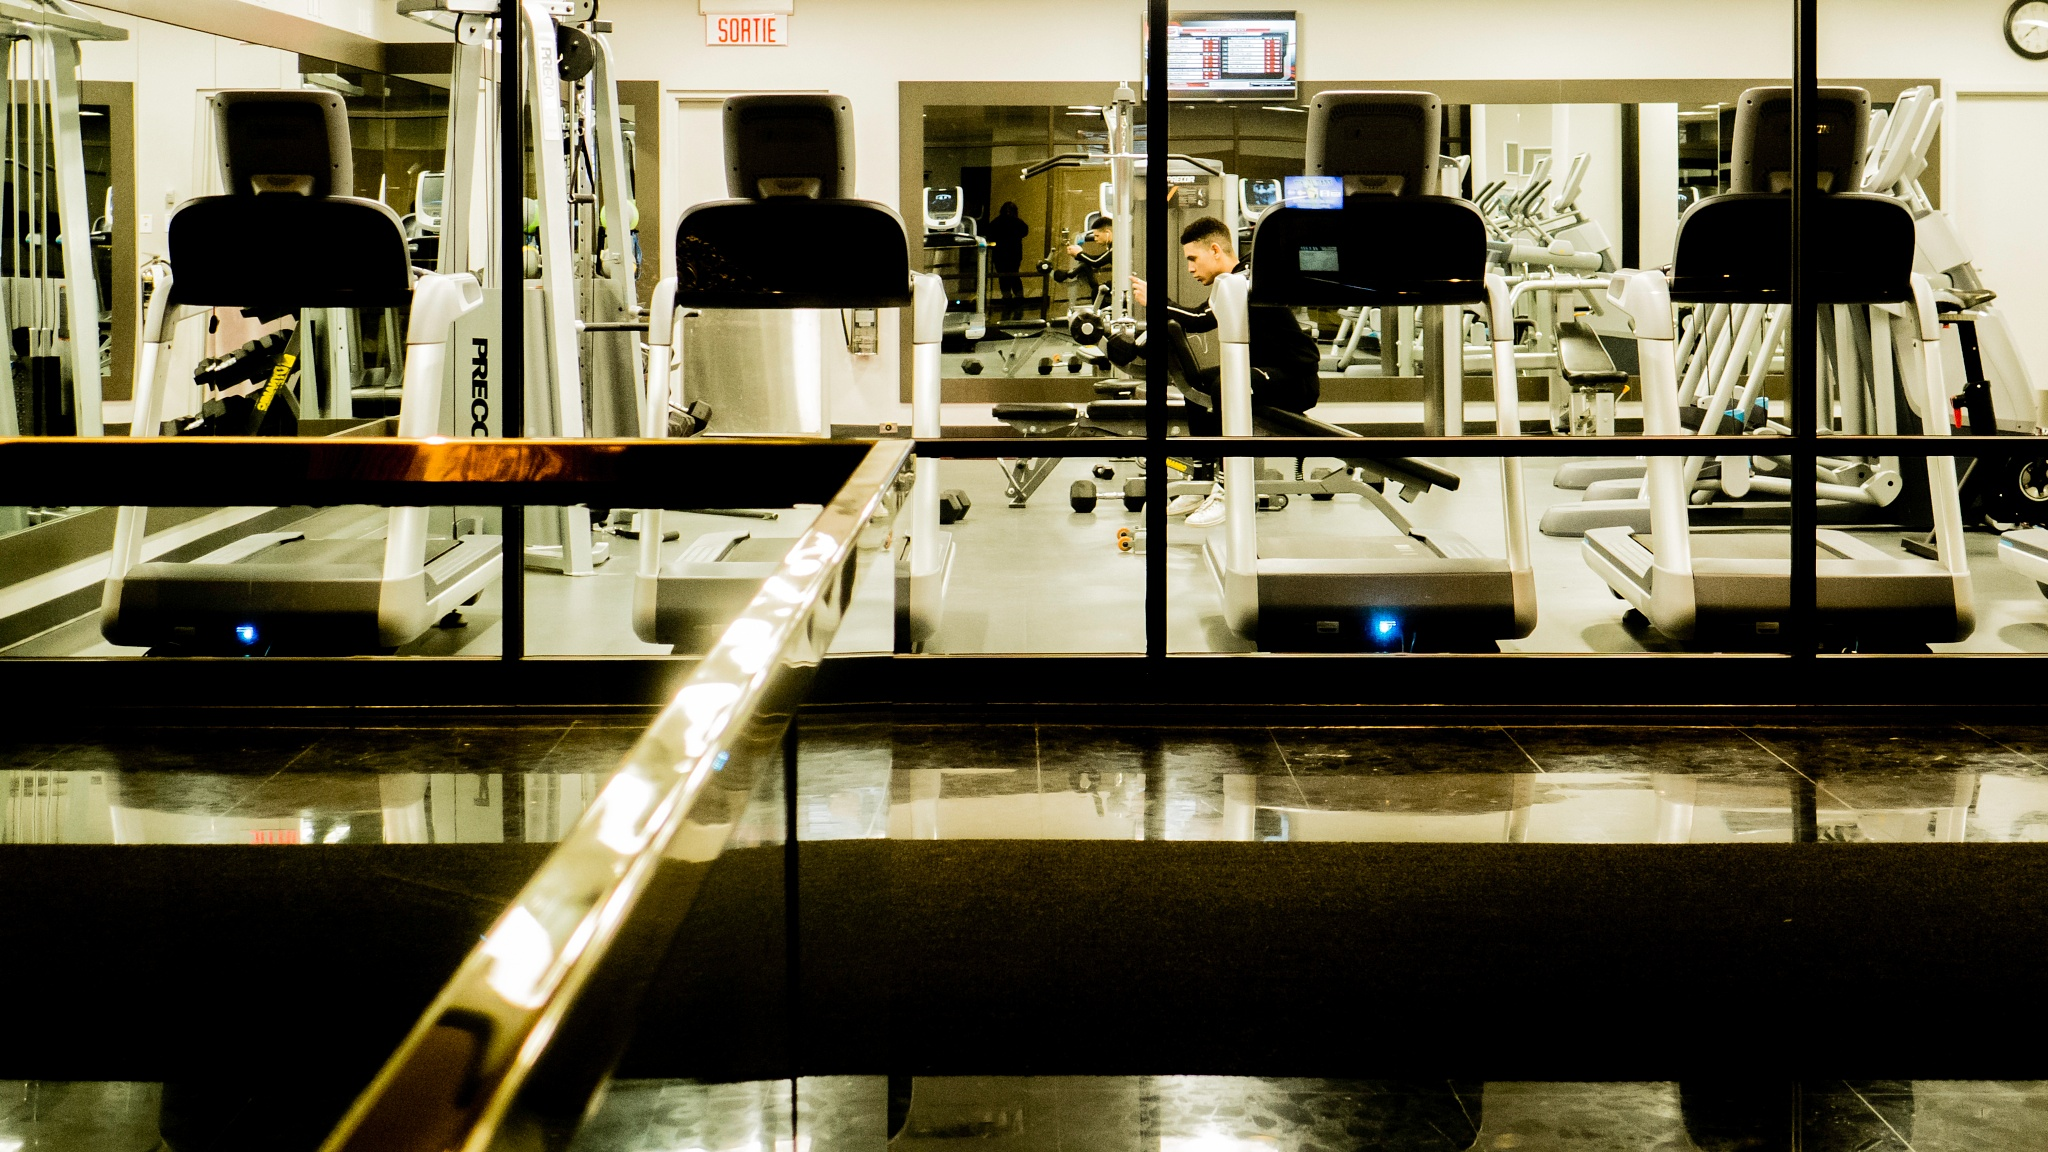 Fitness room with one exercising, EVO, Montreal by Martine de Lajudie